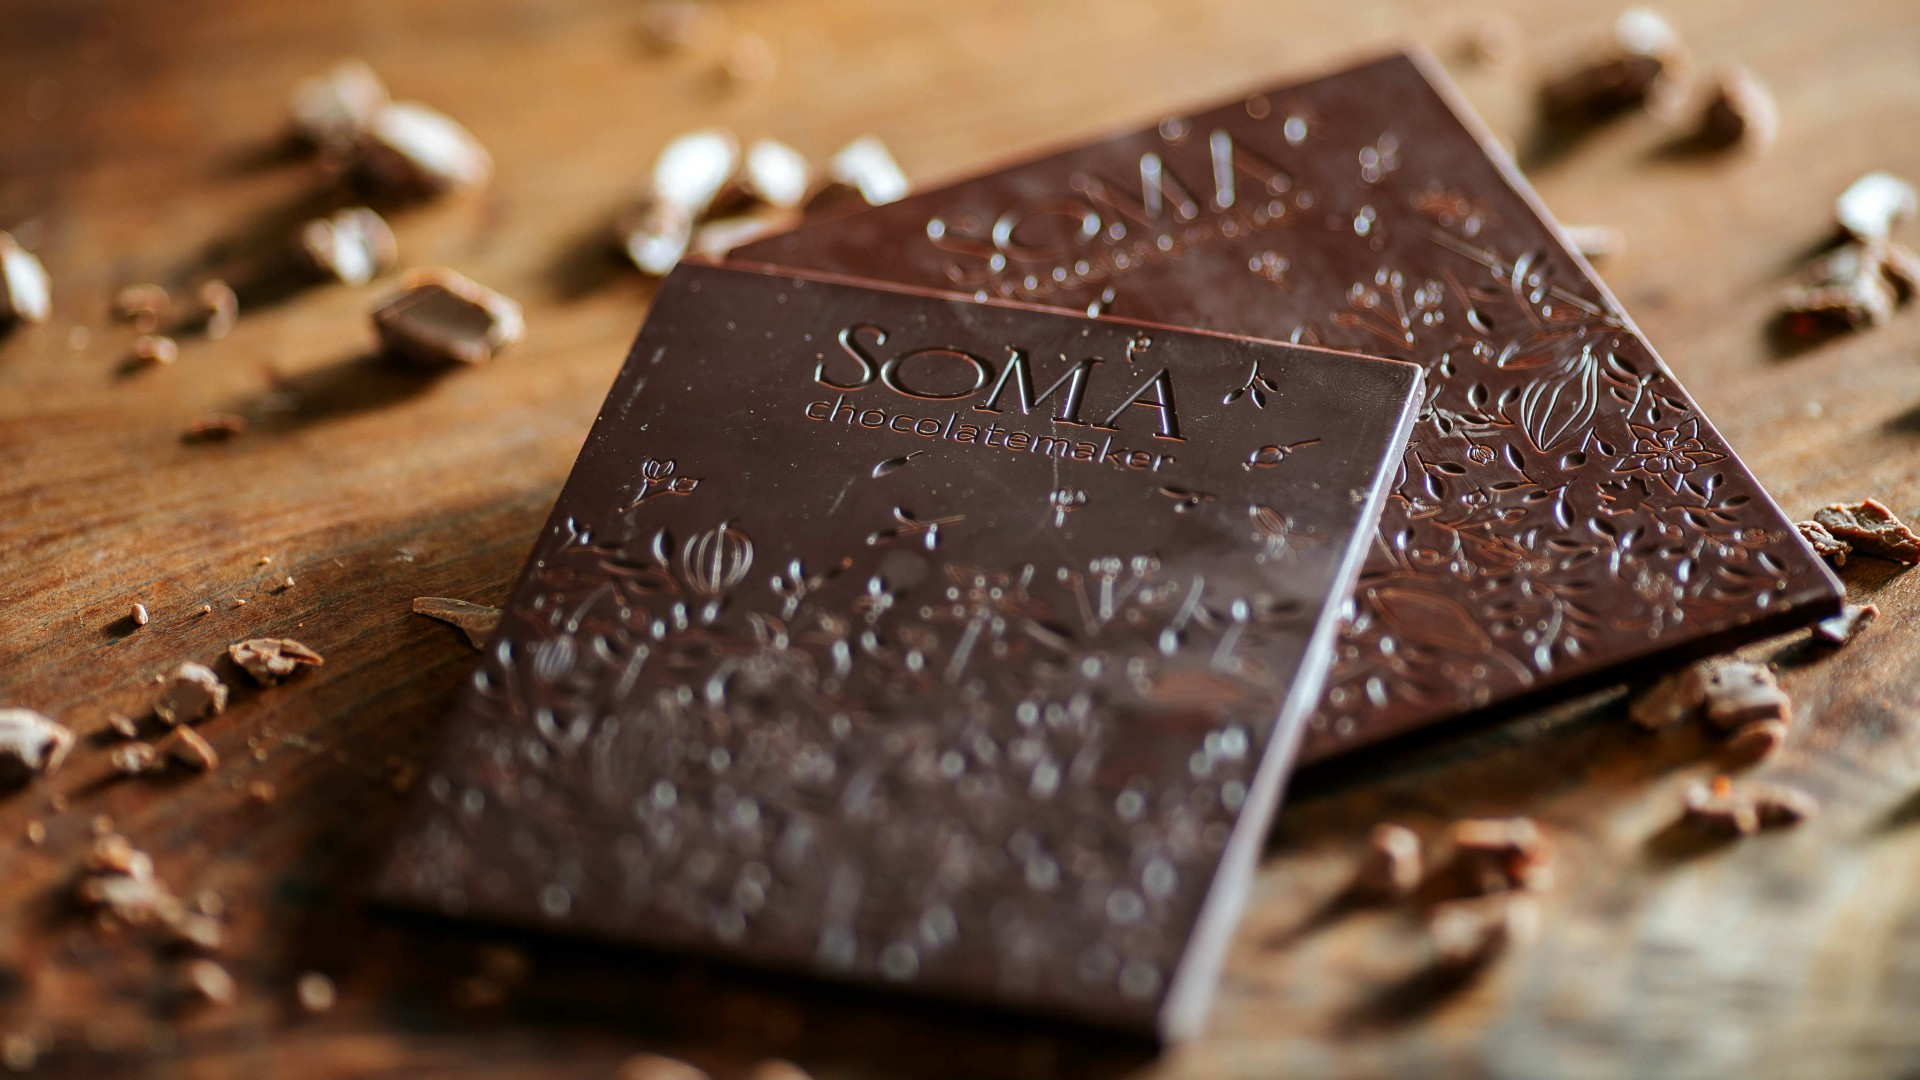 Nerd out over bean-to-bar chocolate